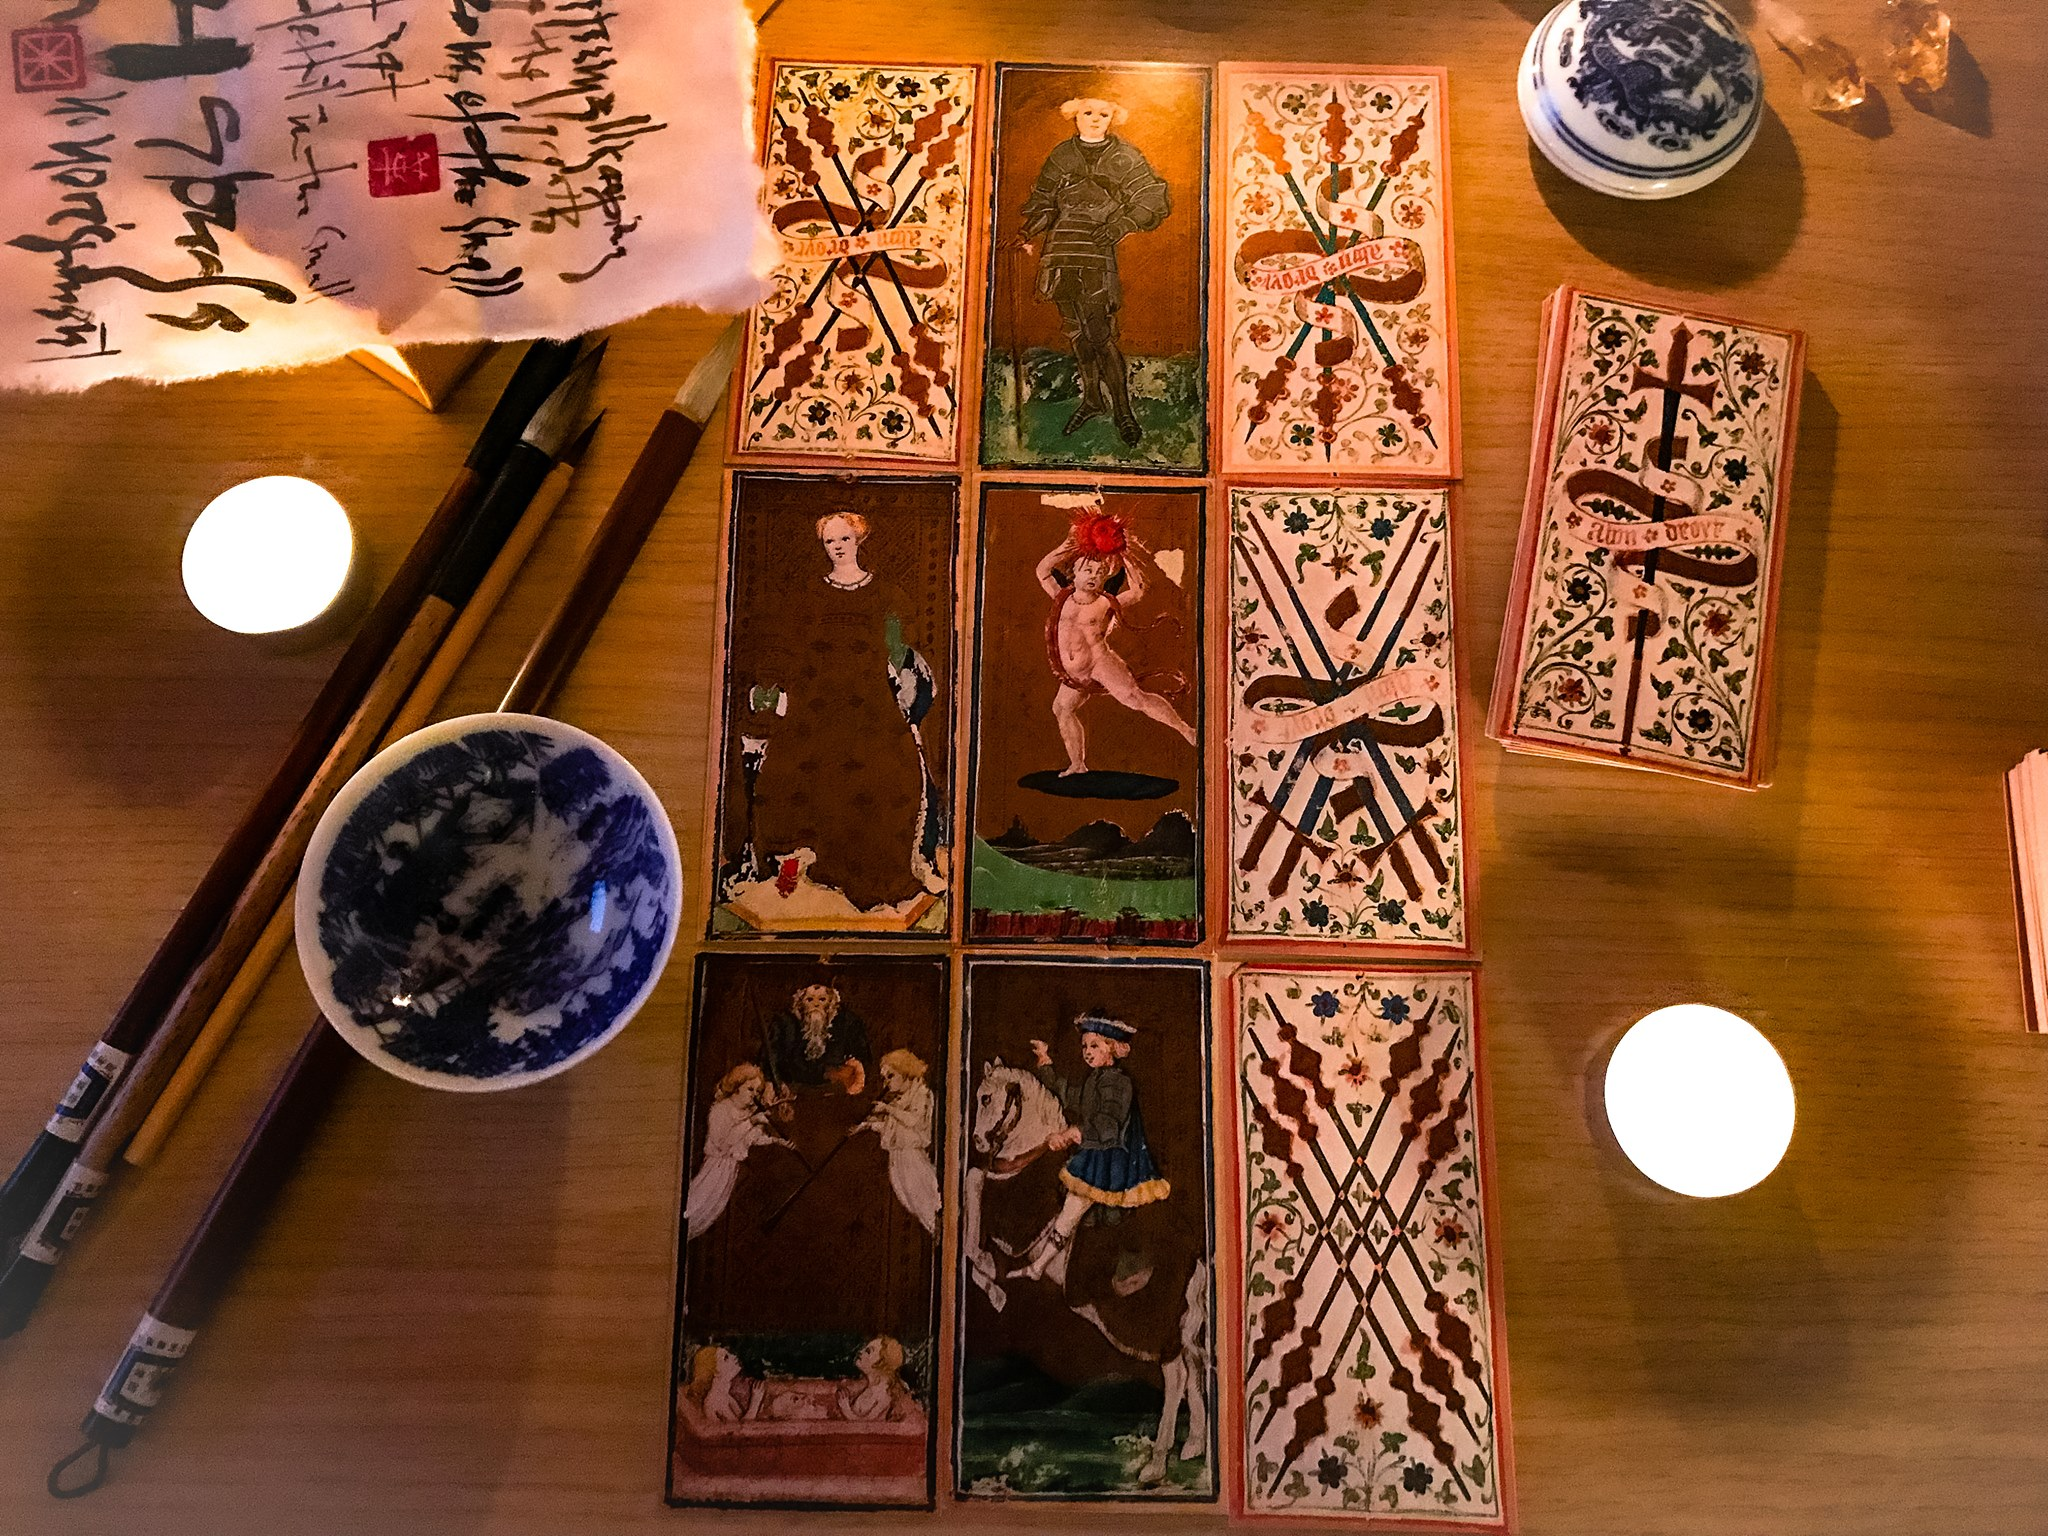 Visconti Sforza Tarot, Il Meneghello edition 2002 (Photo: Camelia Elias)